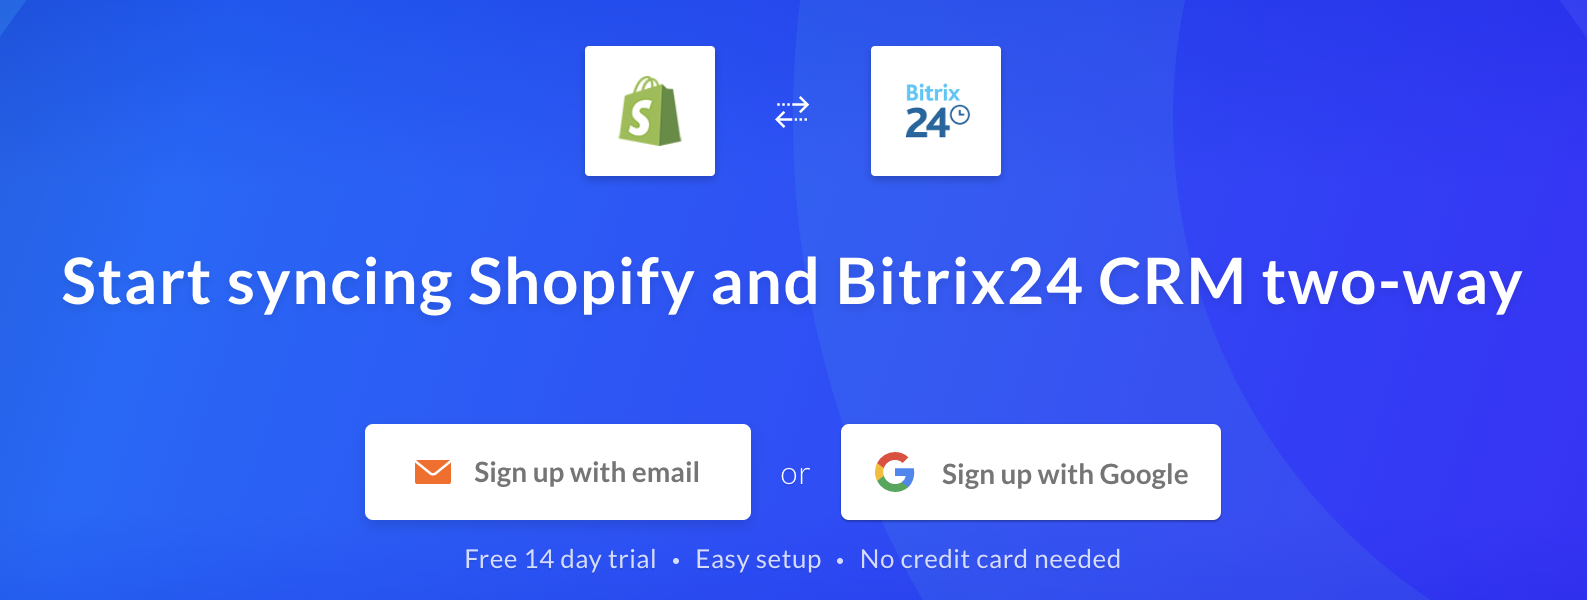 PieSync releases integration for Shopify and Bitrix24